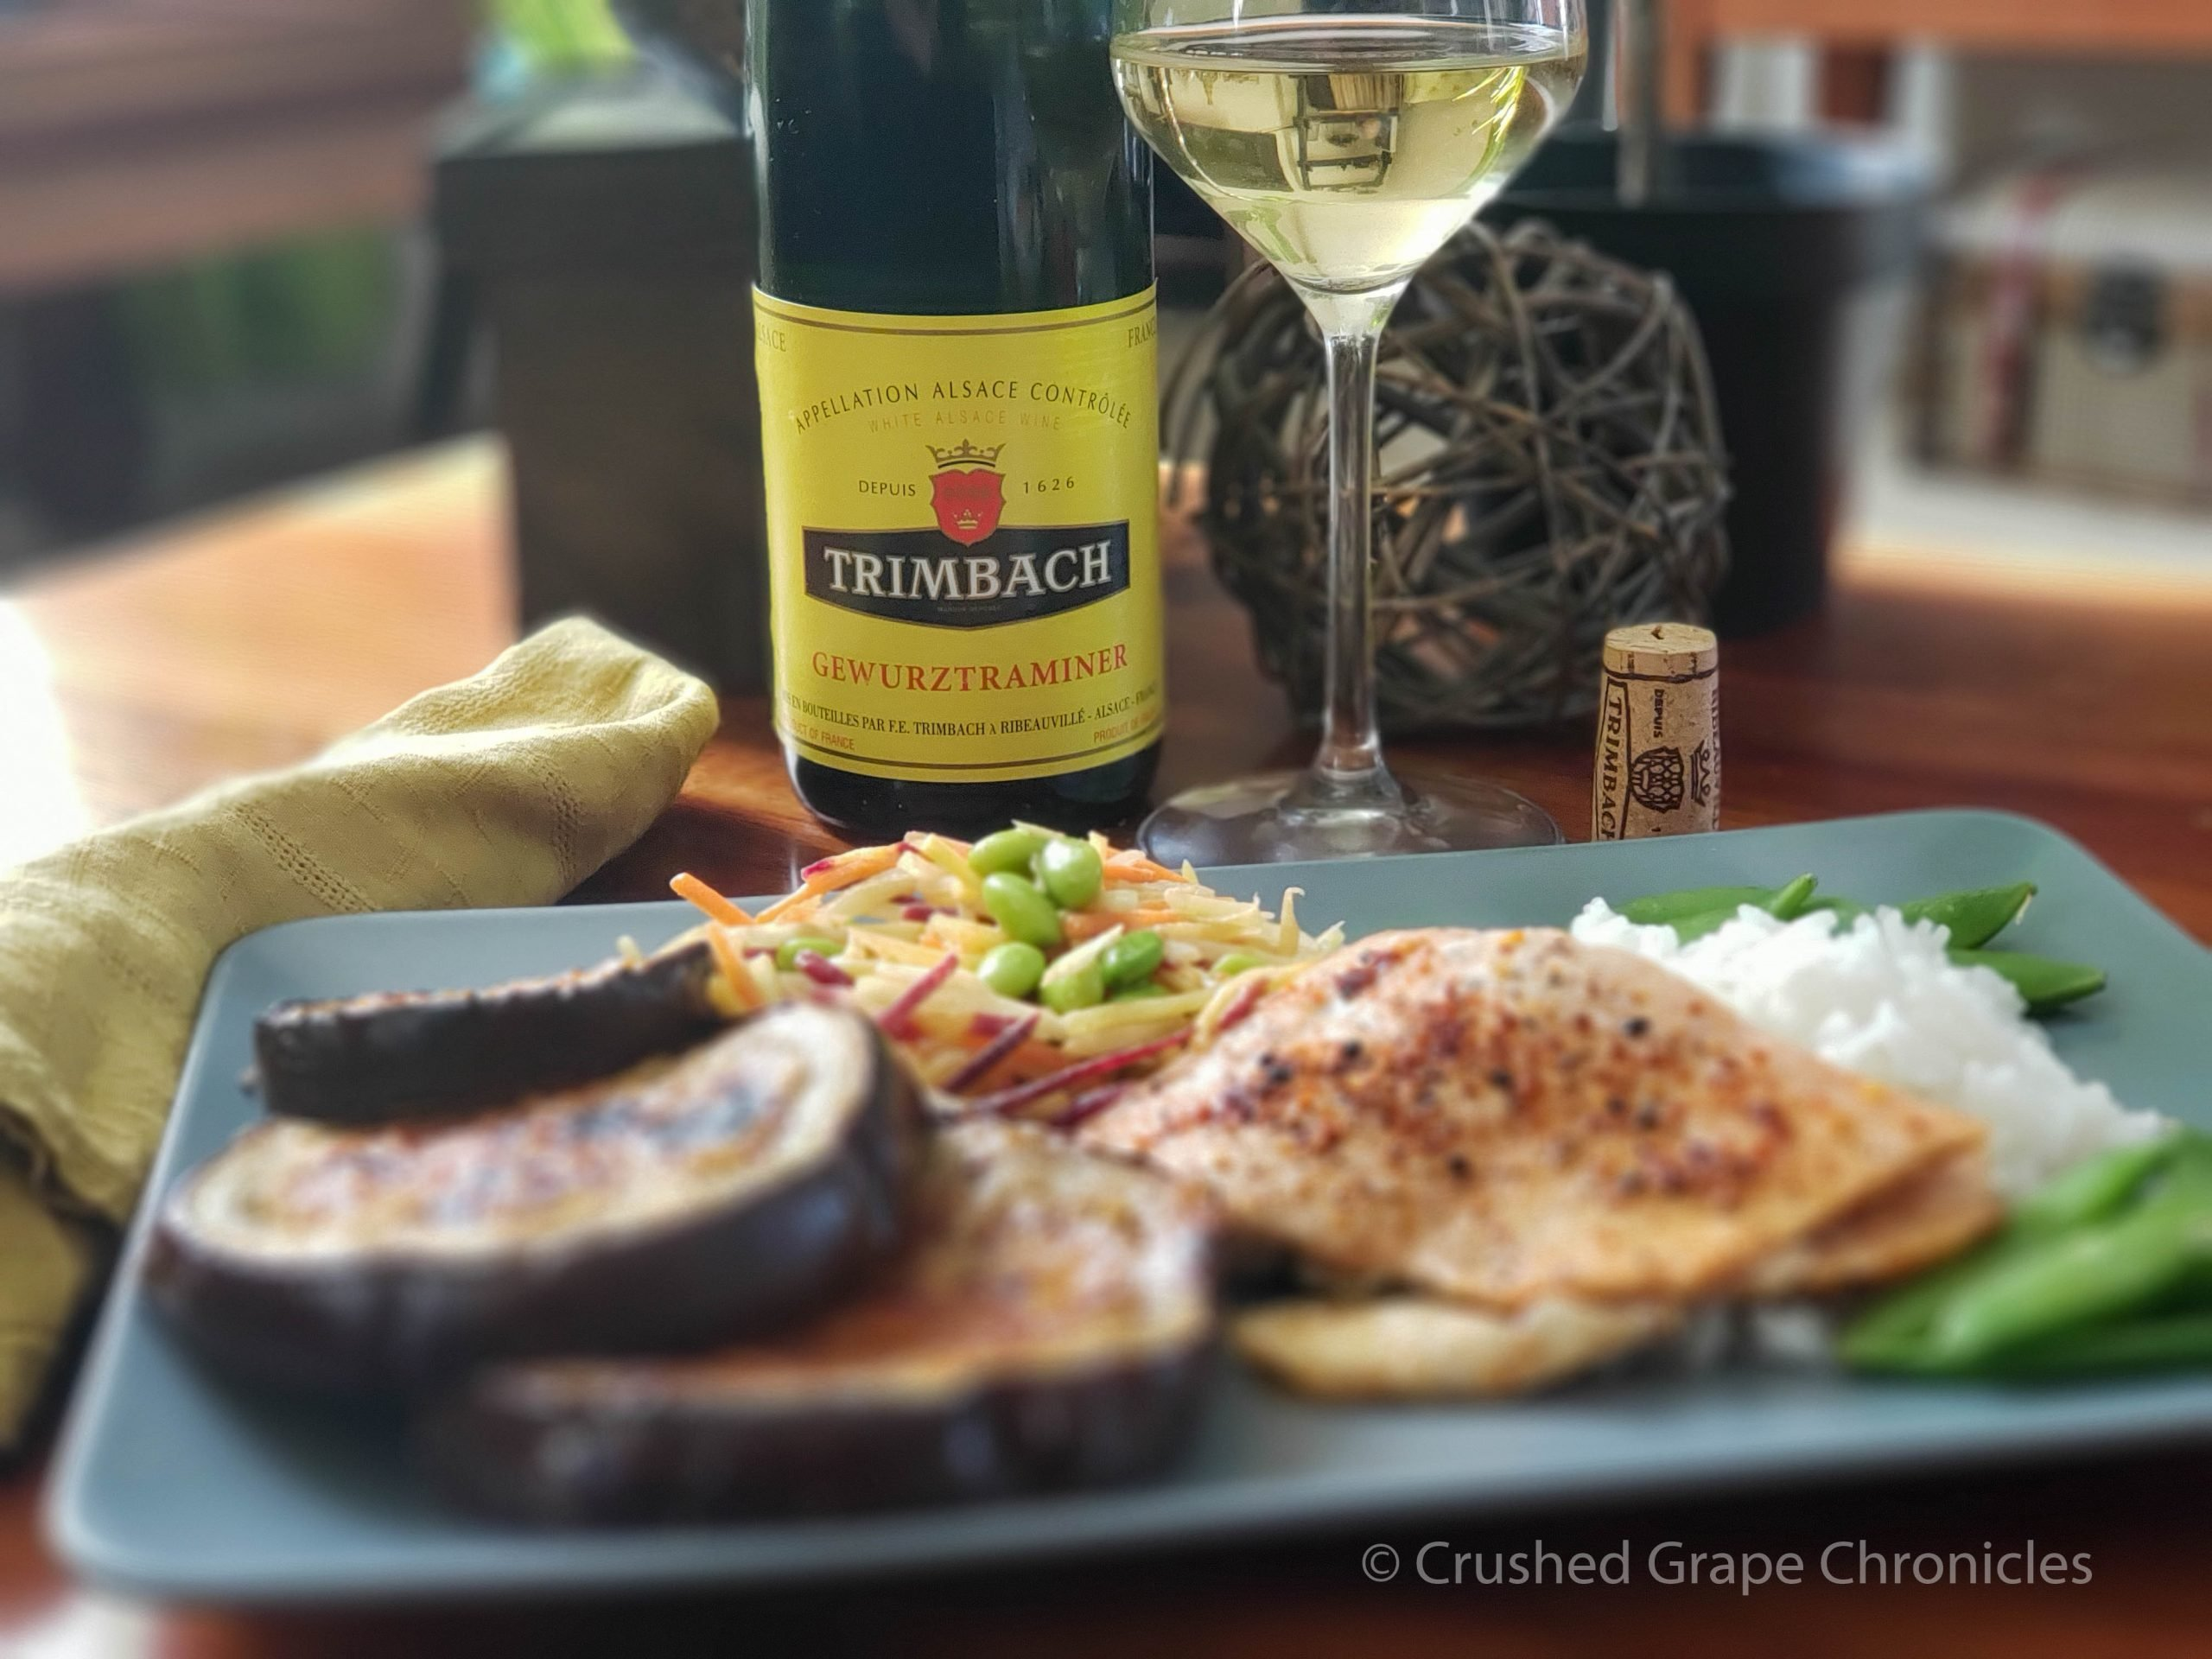 Trimbach 2016 Gewurztraminer with Roasted Togarashi salmon with miso-glazed eggplant from Sun Basket